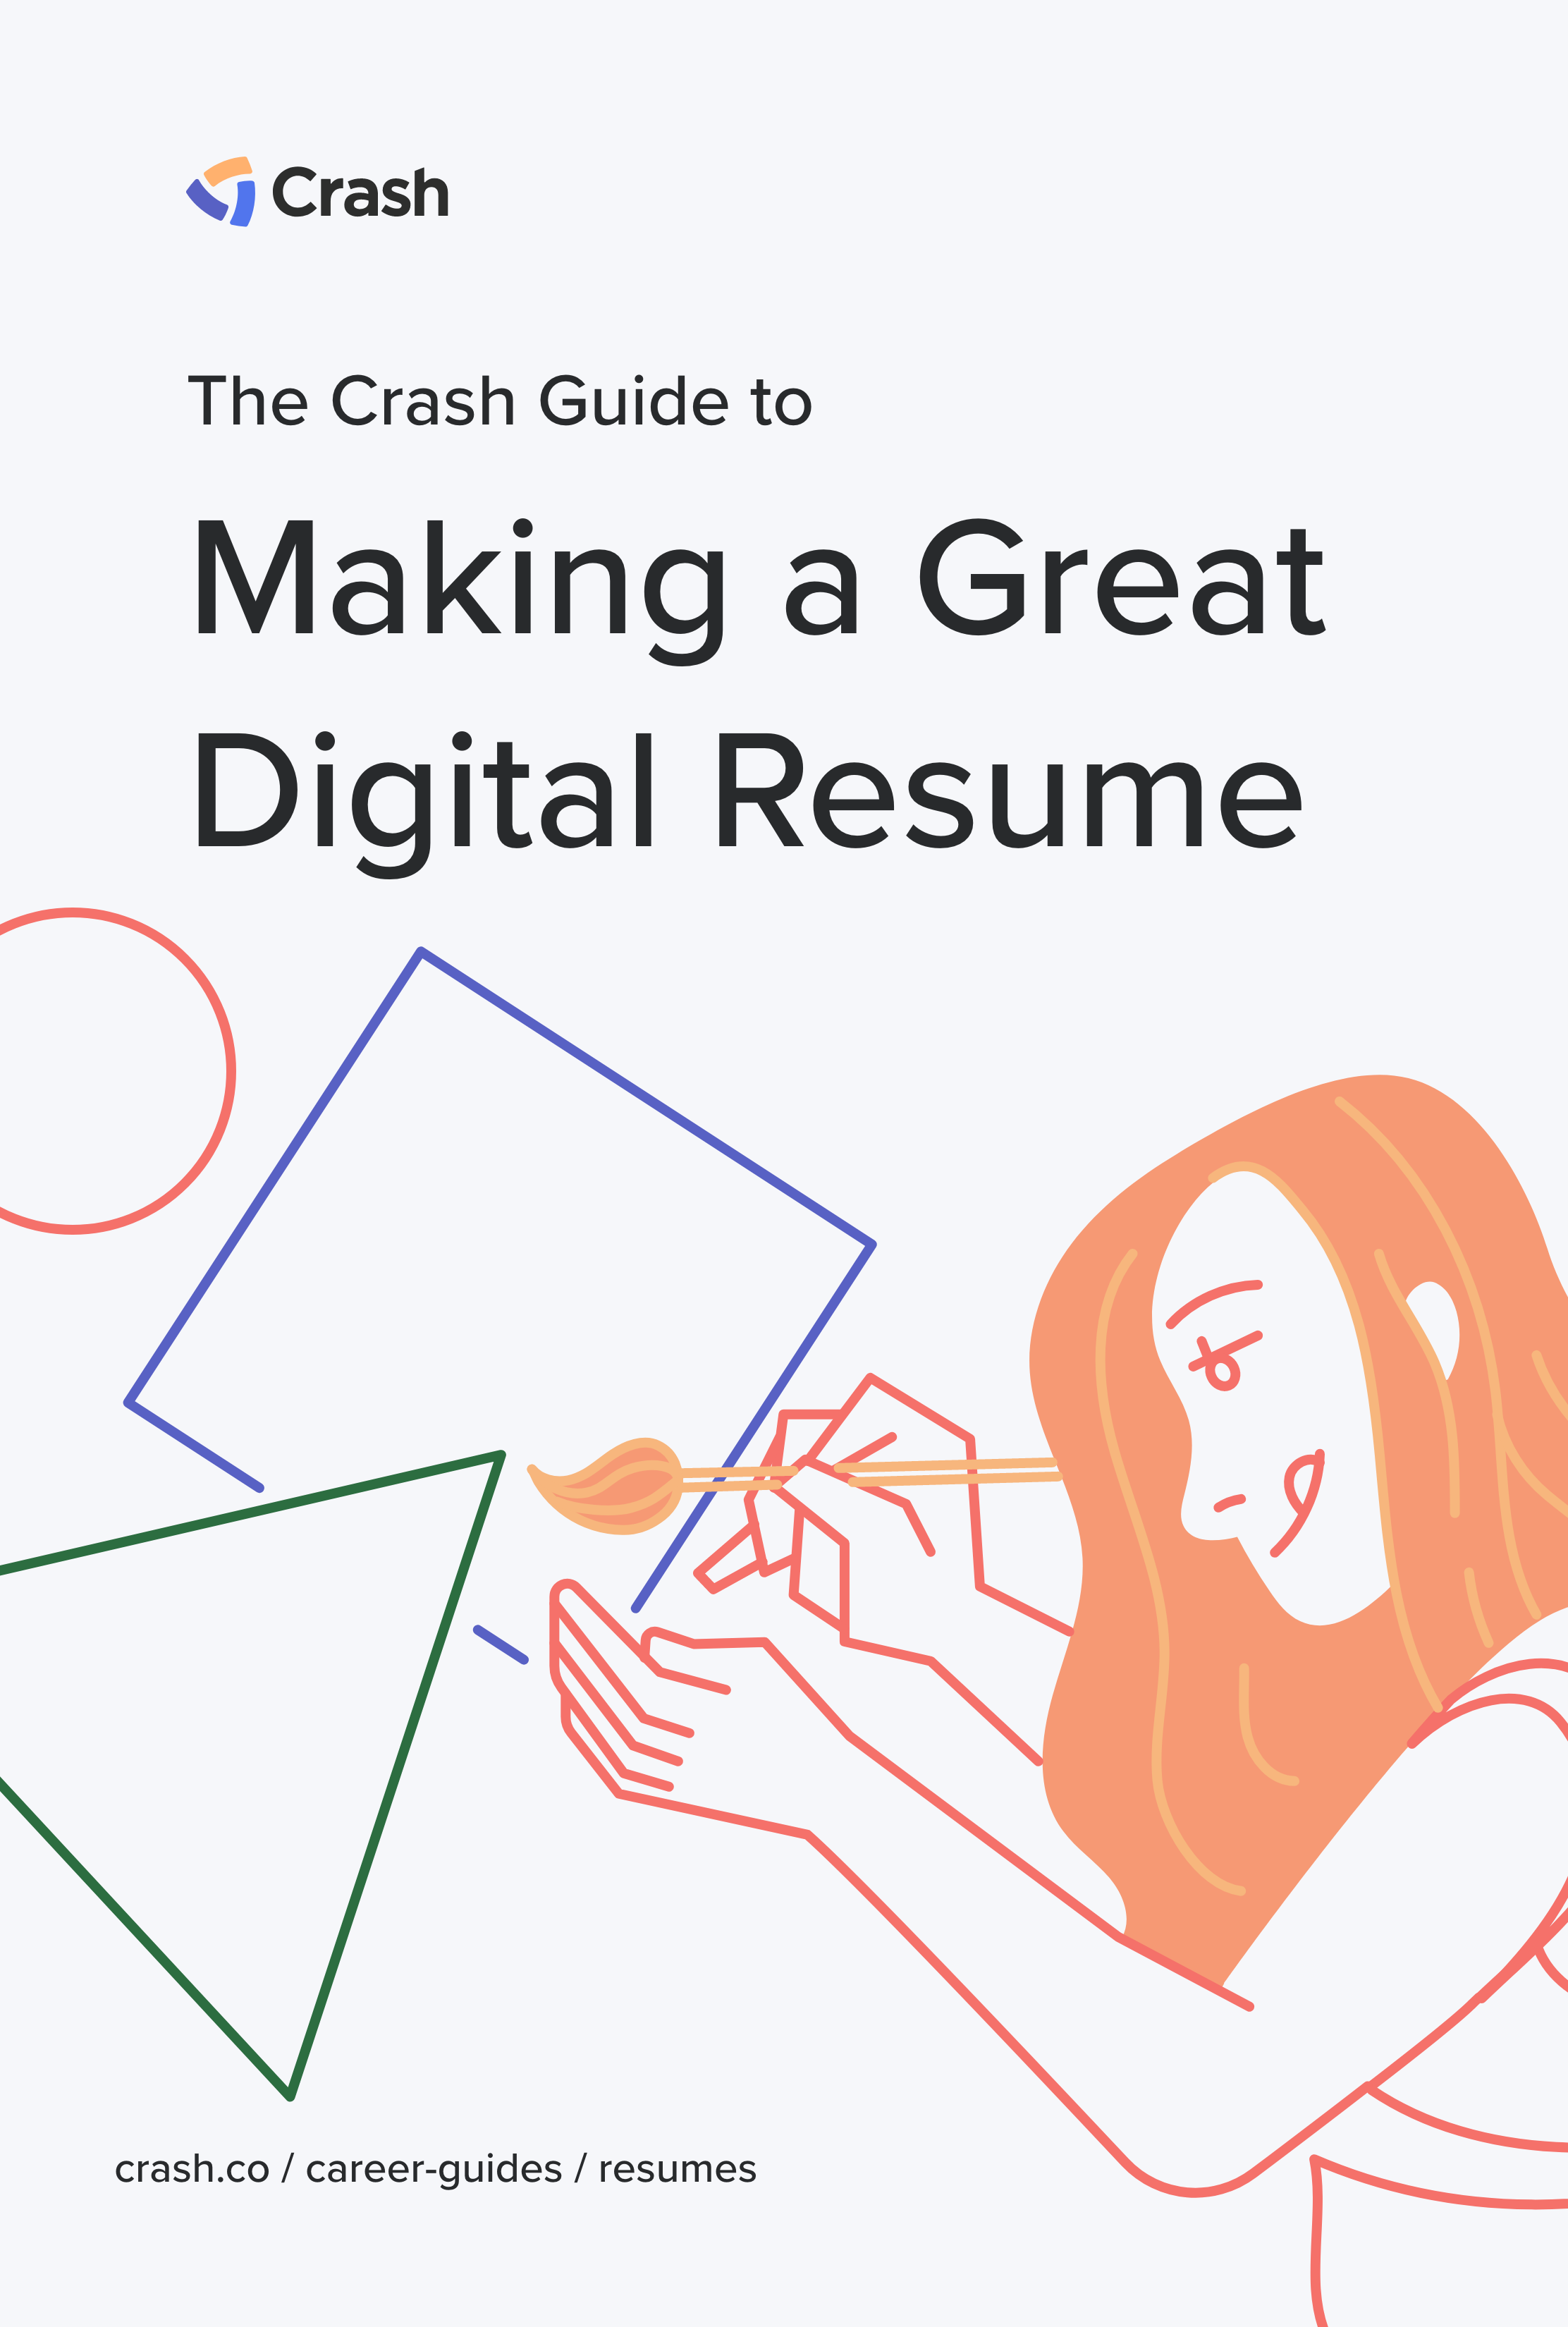 resumes crash career guide cover image